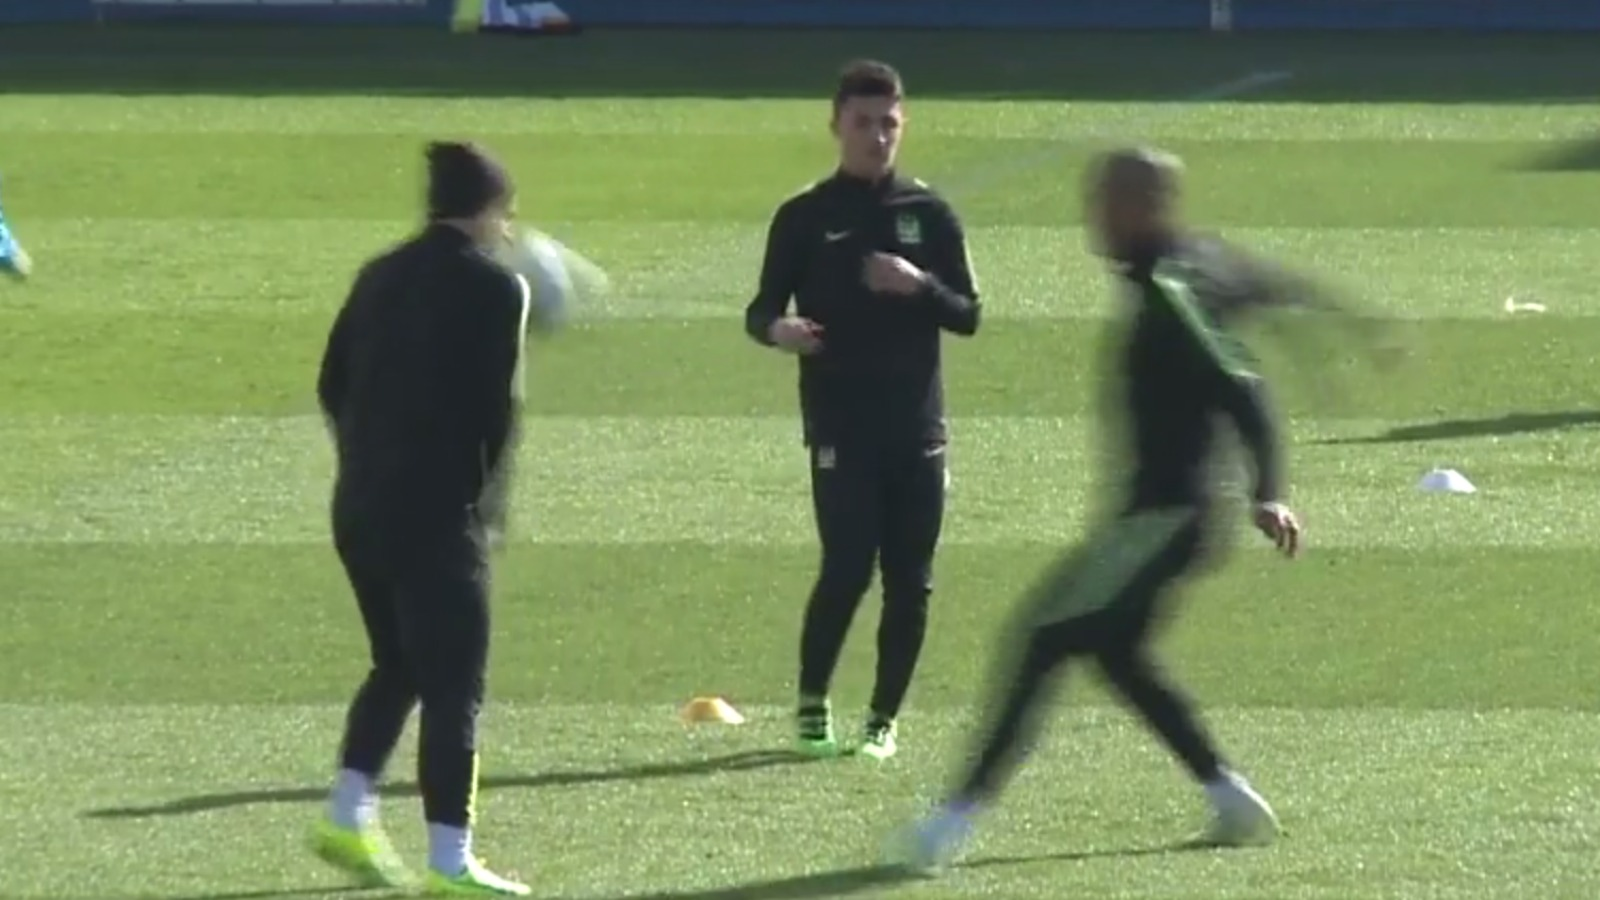 Vincent Kompany tried to decapitate Sergio Aguero in training